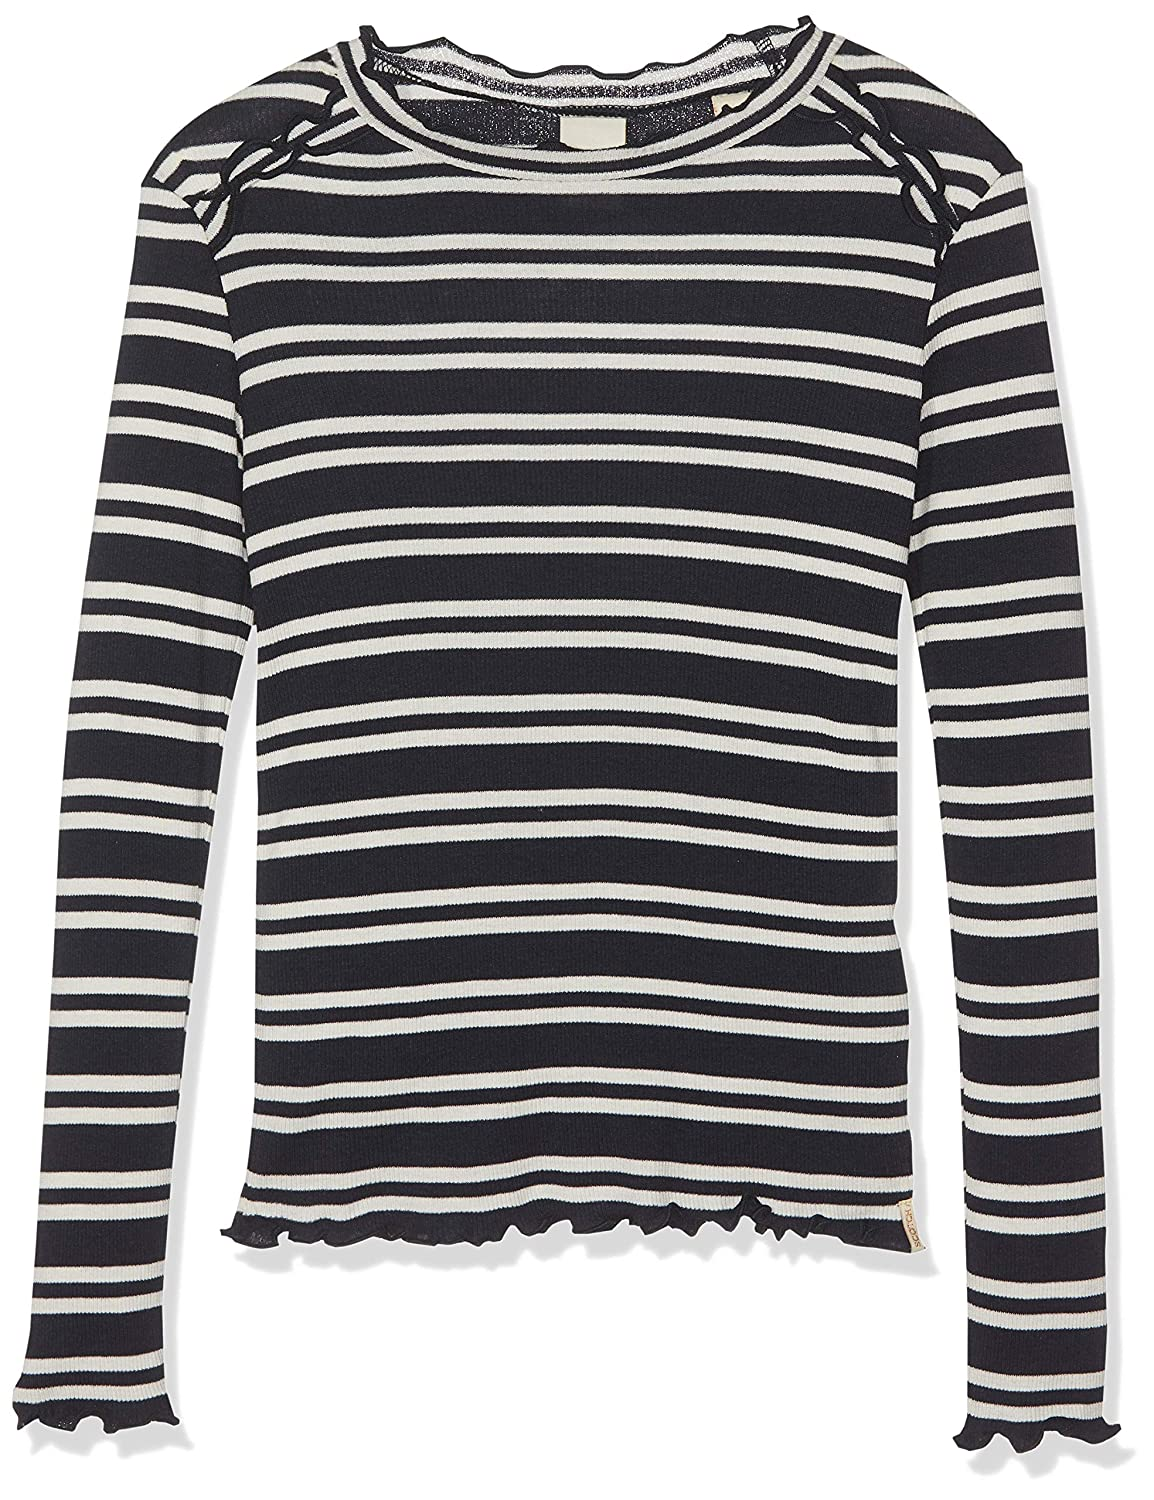 Scotch /& Soda Fitted Long Sleeve Tee in Yarn Dye Stripes with Ruffles Maglia a Maniche Lunghe Bambina